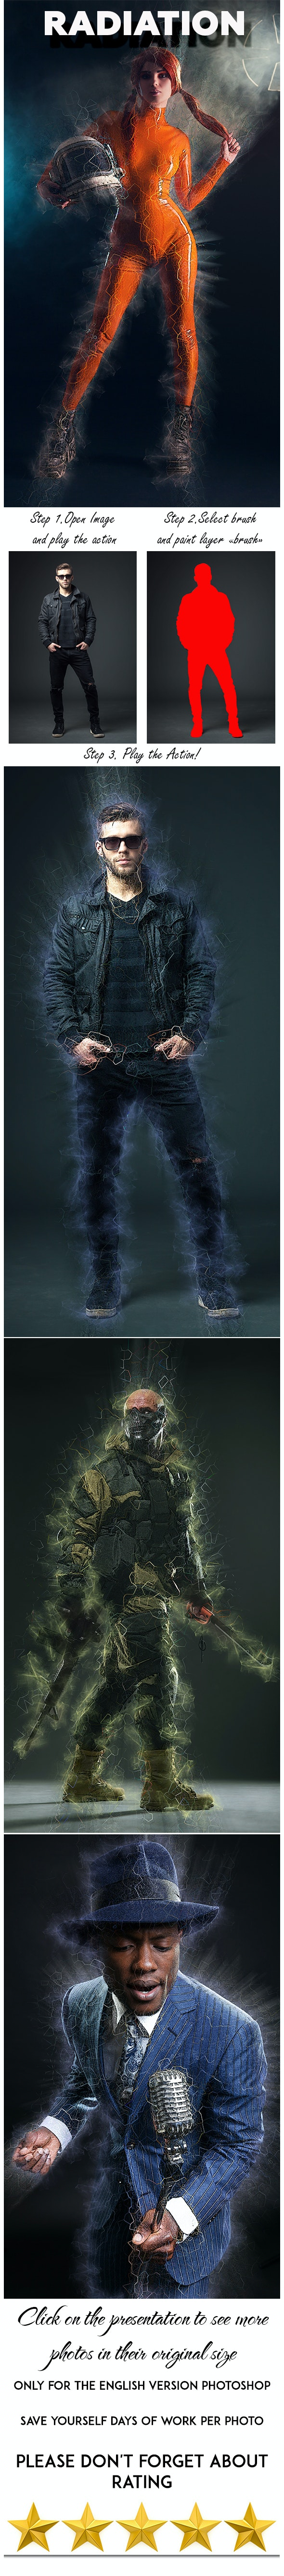 Radiation Photoshop Action - Photo Effects Actions